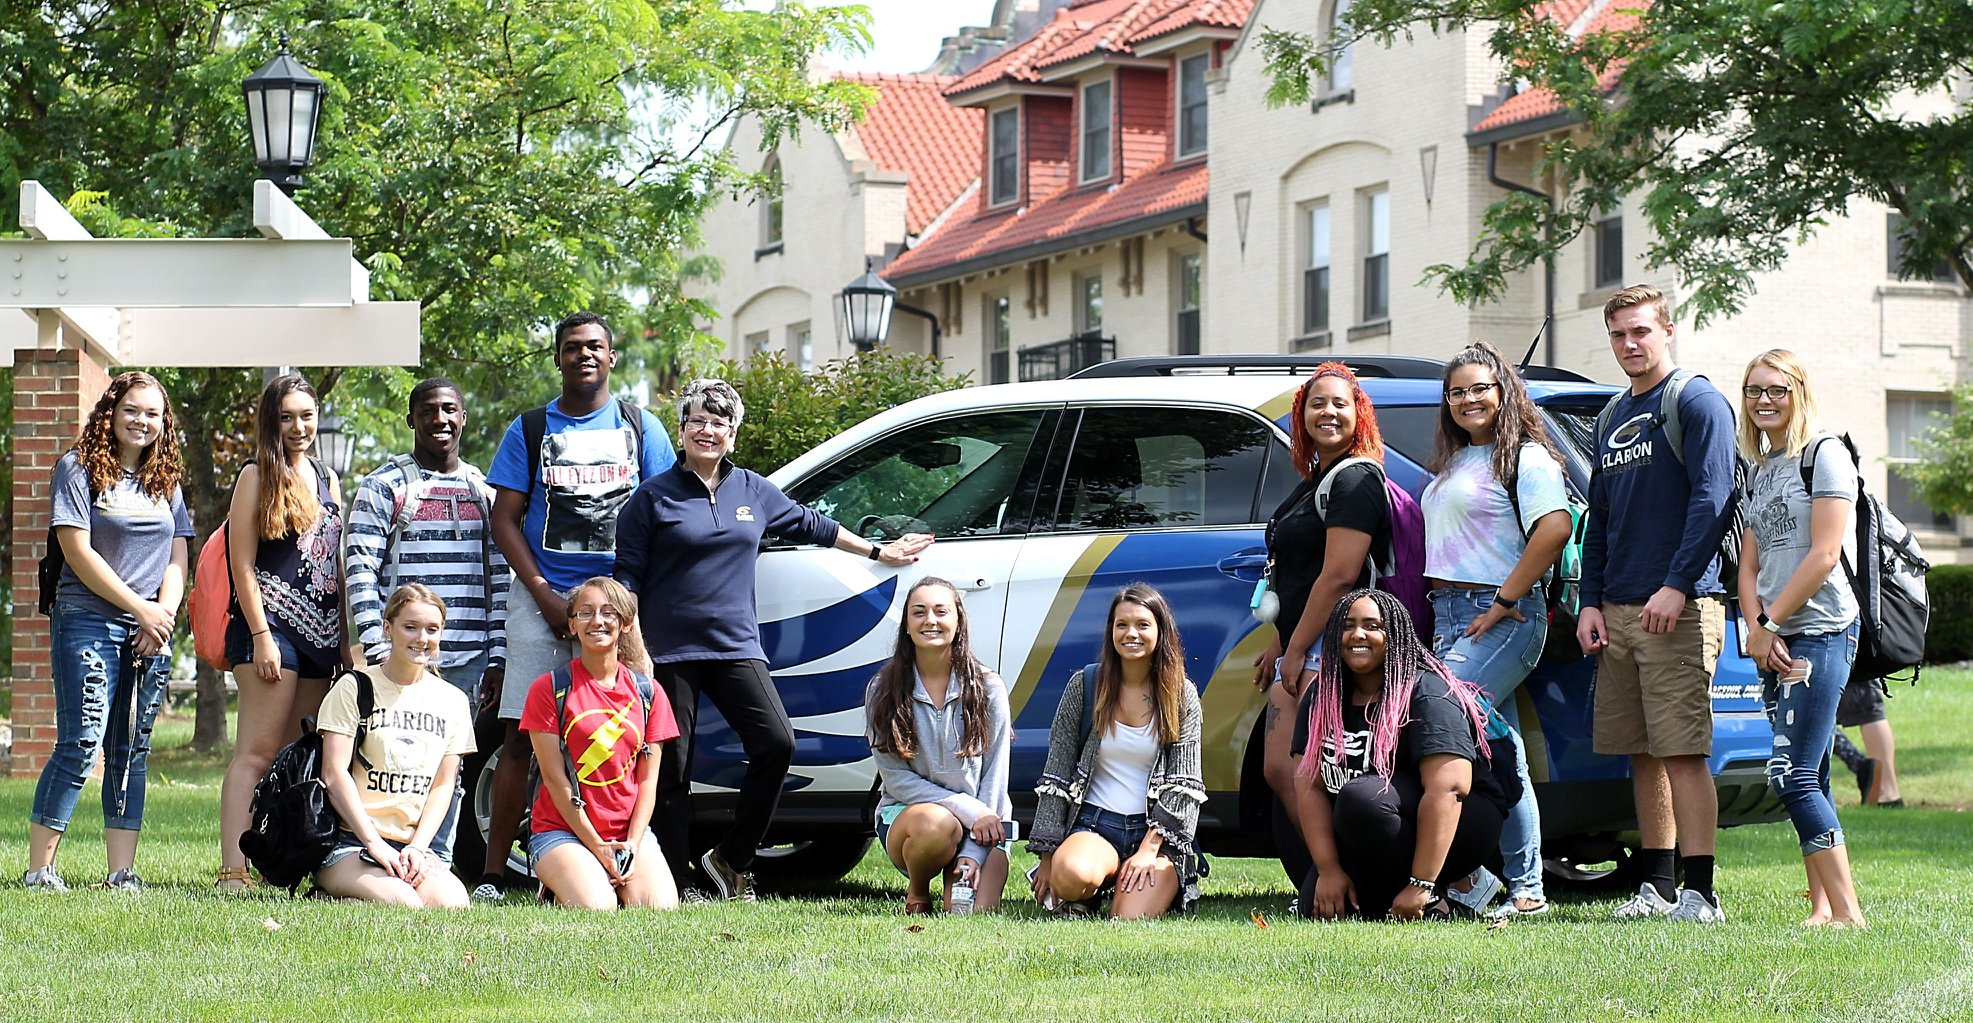 Clarion University President Dale-Elizabeth Pehrsson and CUP students with the Eaglemobile. Courtesy of Clarion University of Pennsylvania.